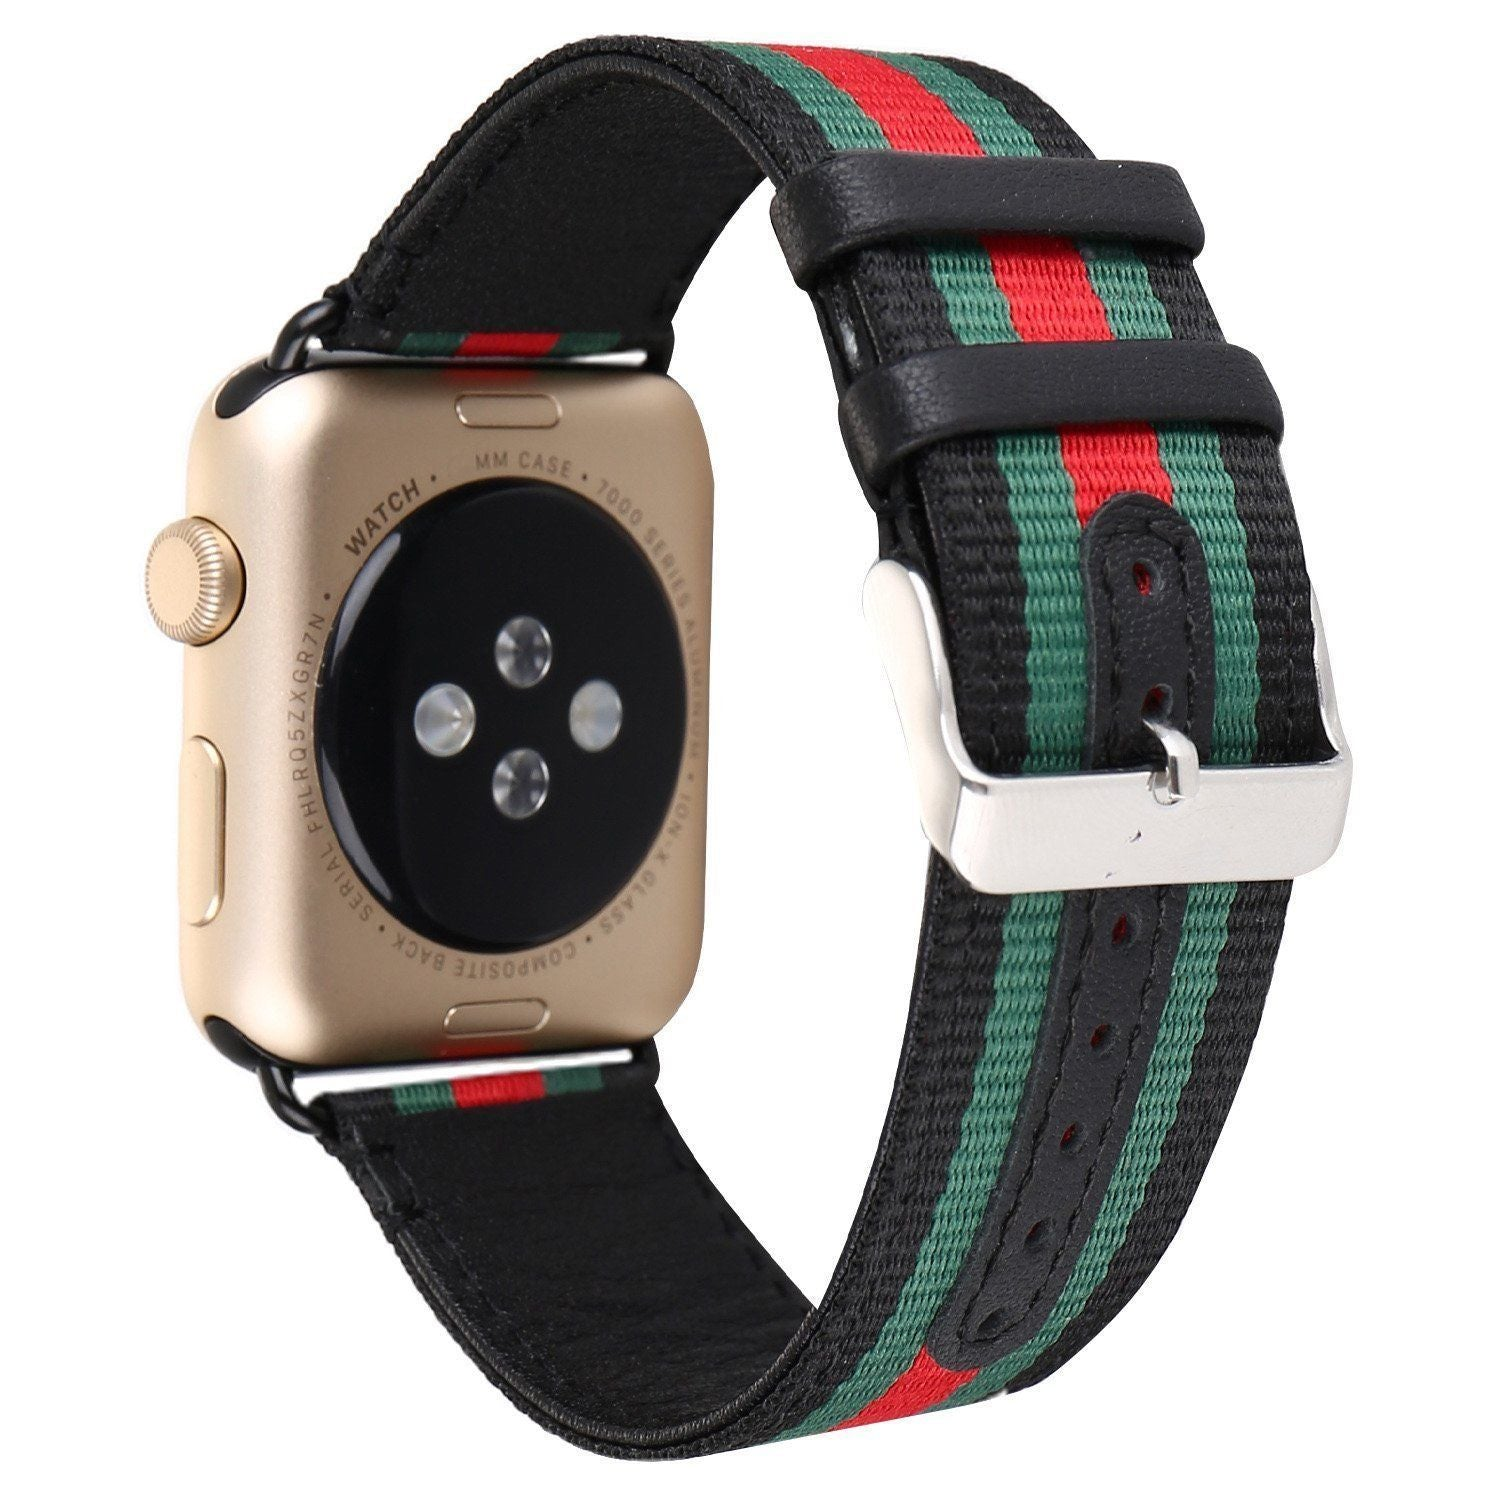 126f8cdc329 Gucci Style Apple Watch Band – AESTHETIC 99